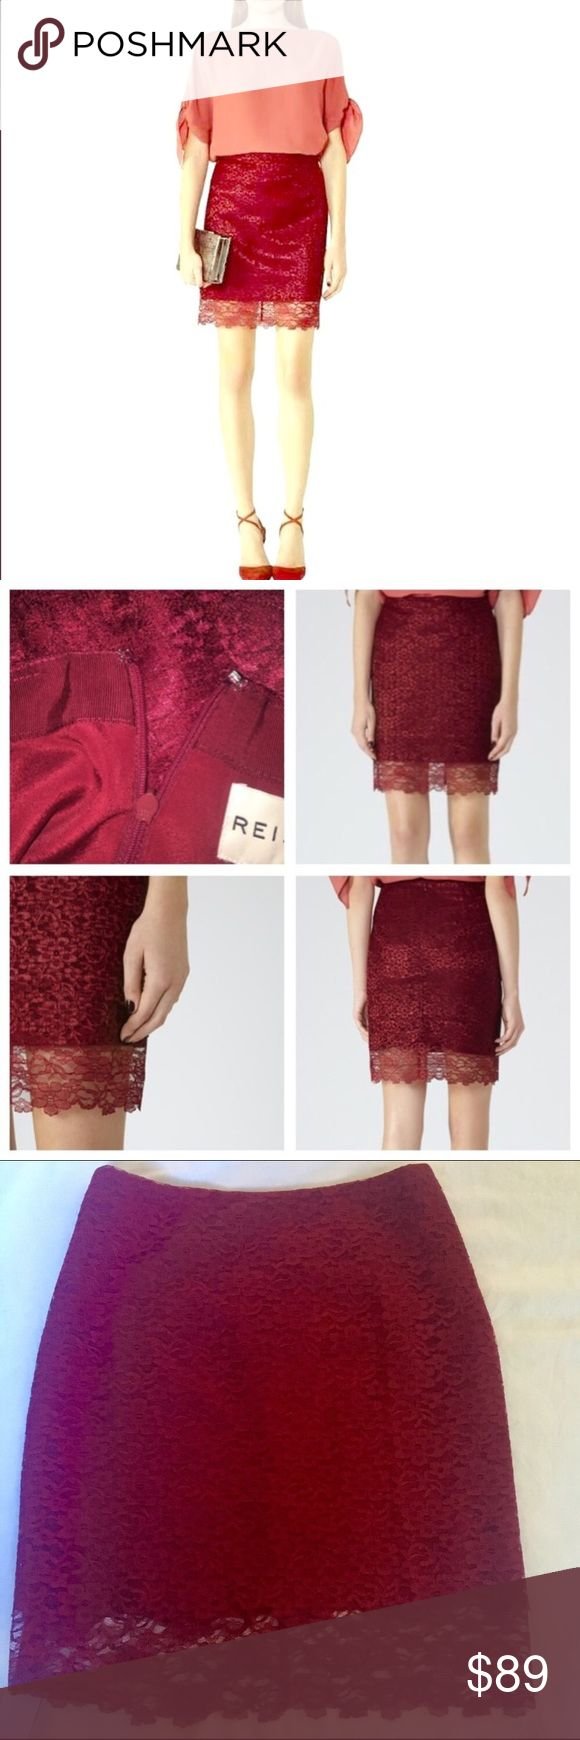 NWT Reiss red lace skirt SERIOUSLY STUNNING! New with tags! Super popular high end designer from the UK, this Reiss dark red lace skirt is delicate and gorgeous! Back zipper closure with small hook. Two layers of lace. Lined inside and has a longer lace layer to be sheer at the very bottom. So pretty. Incredibly sexy and beautiful in person! Tag says UK size 10, which is equivalent to a USA size 6. Reiss Skirts